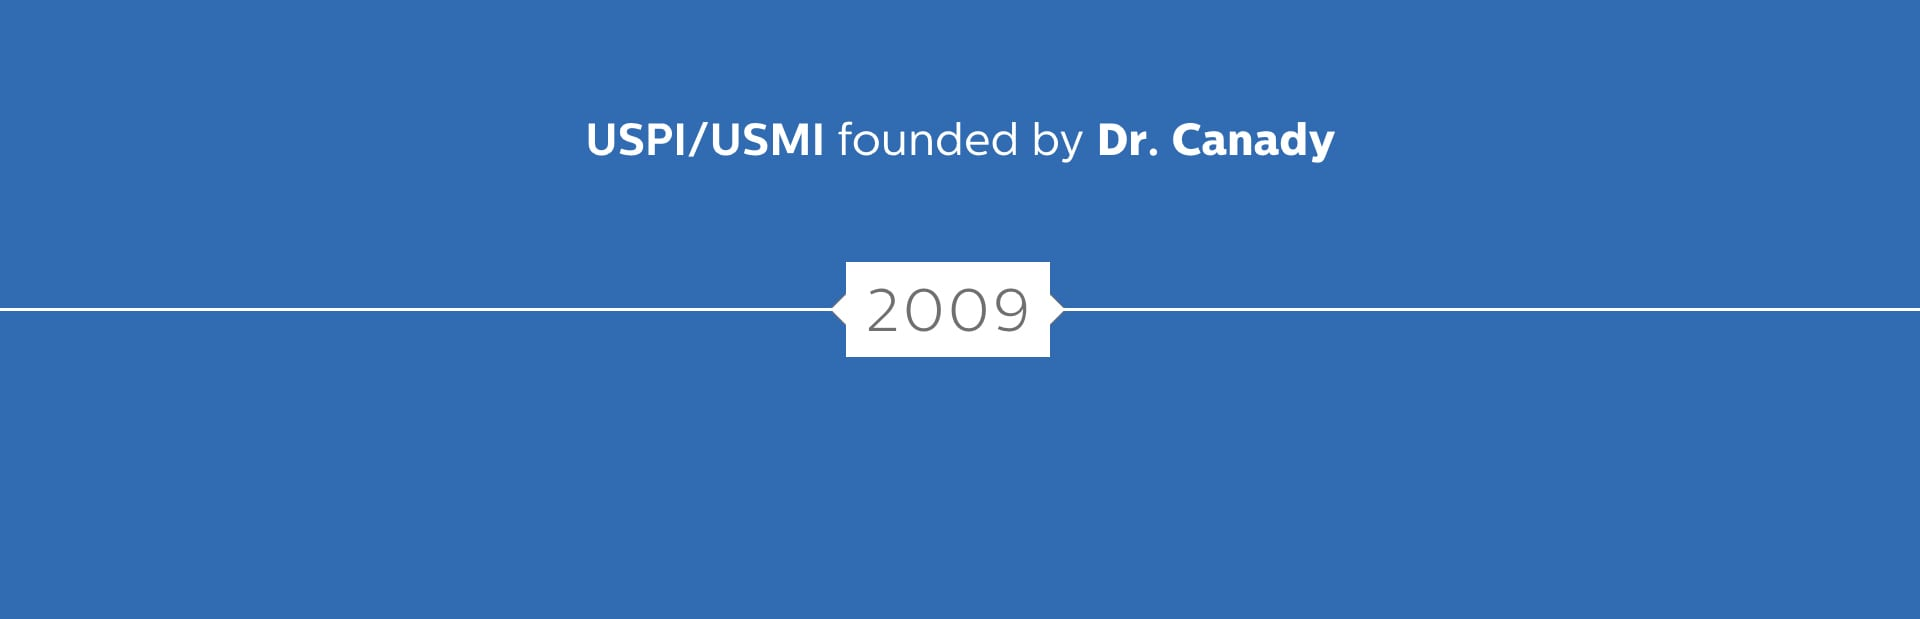 US Patent Innovations and US Medical Innovations was founded by Dr. Canady in 2009.